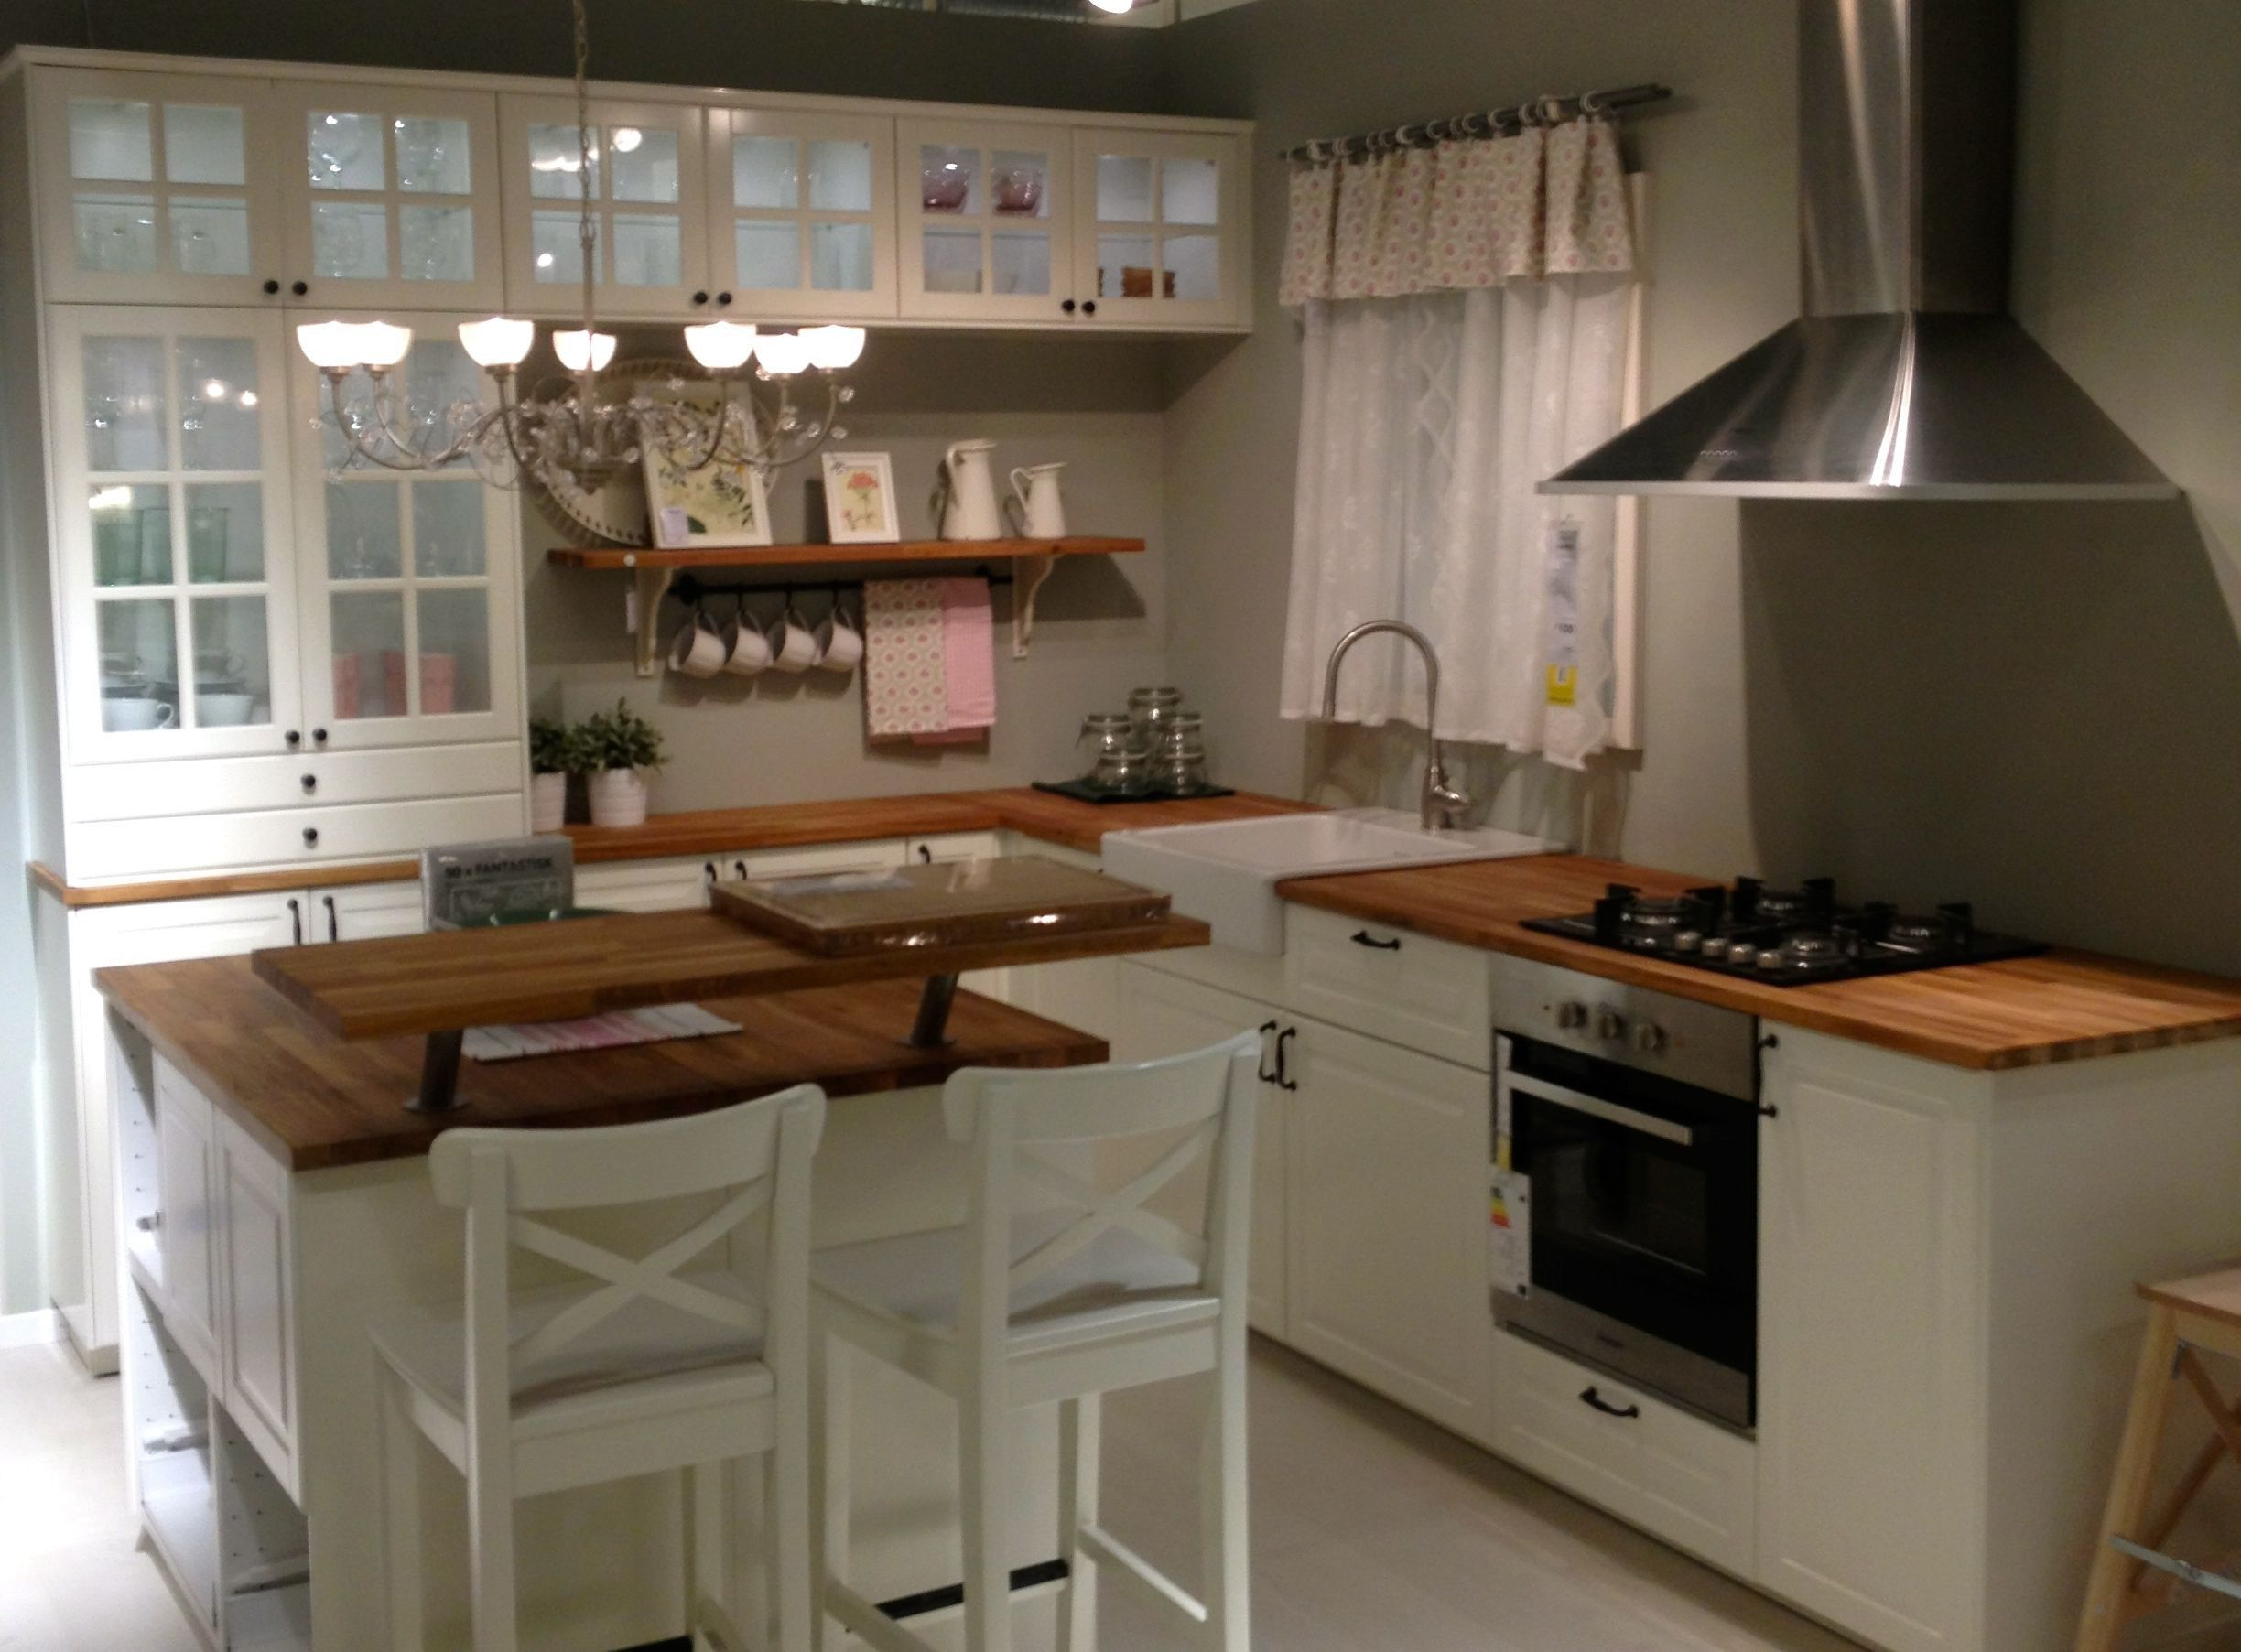 15 Fantastic Pictures For Ikea Kitchen Bodbyn Ivory White Allkuche Allkuche Bodbyn Fantastic In 2020 Small Kitchen Storage Ikea Bodbyn Kitchen Ikea Kitchen Design